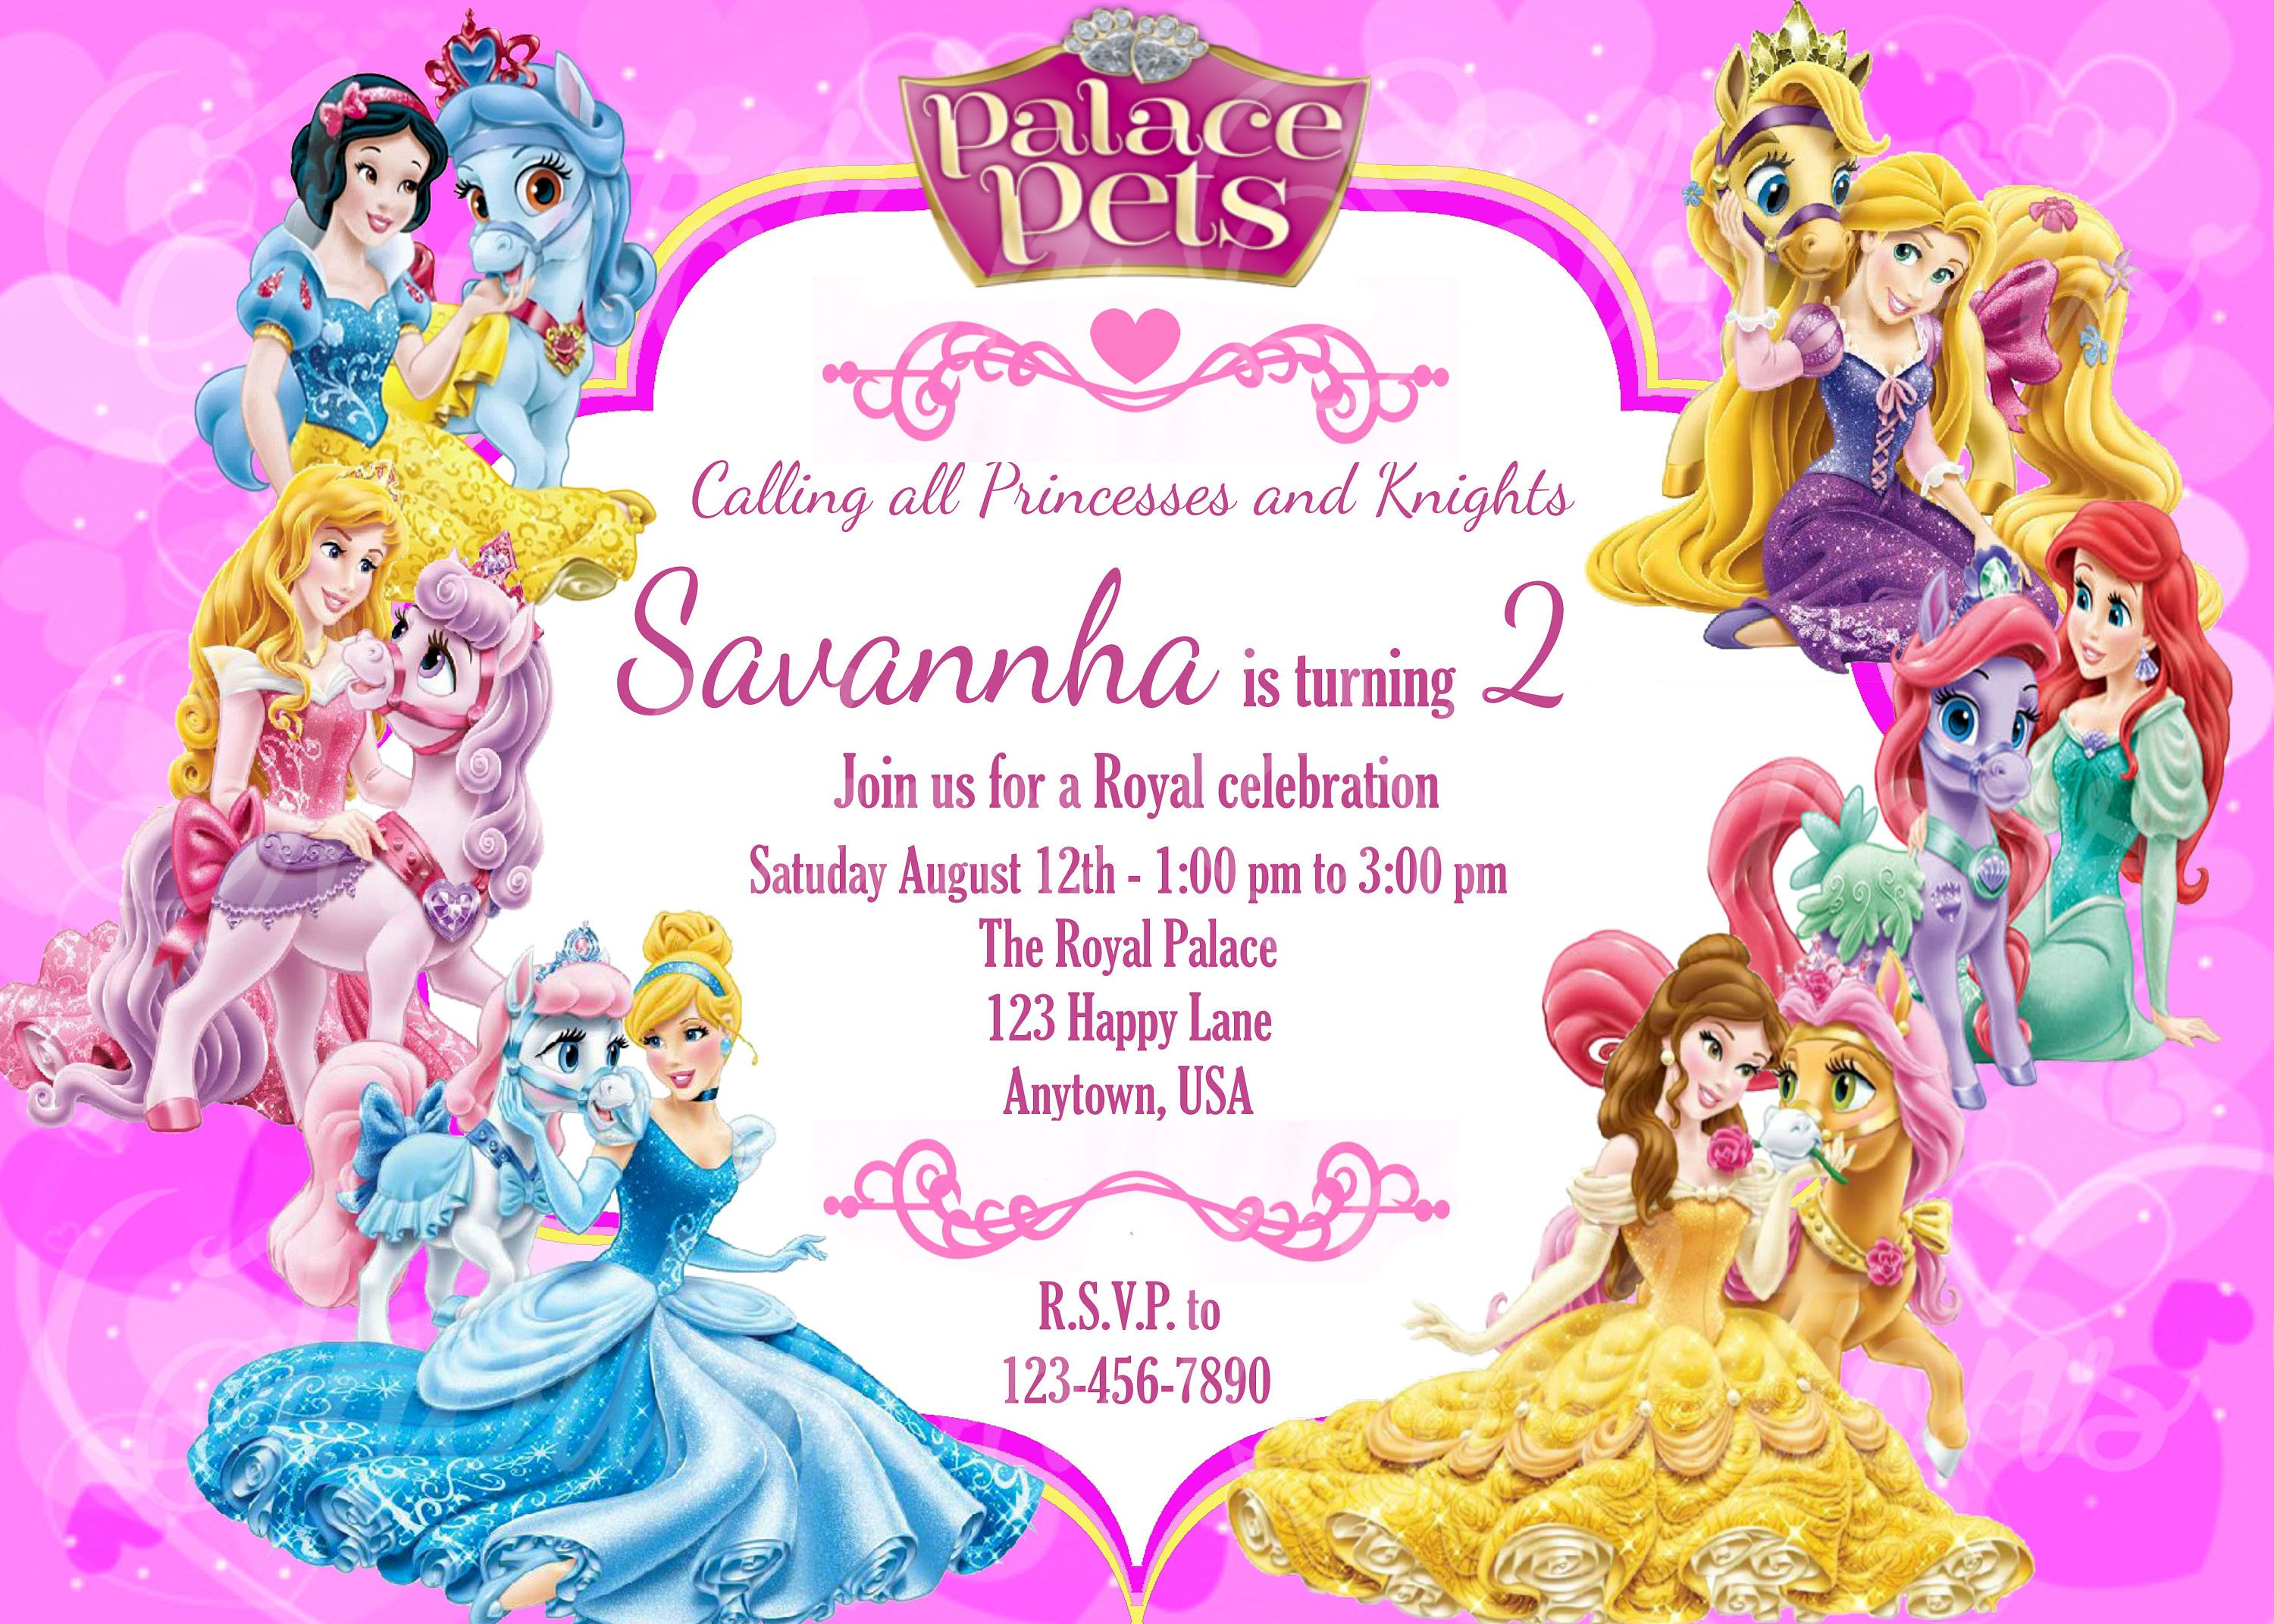 Princess and Palace Pets Party Invitation Disney Princesses with